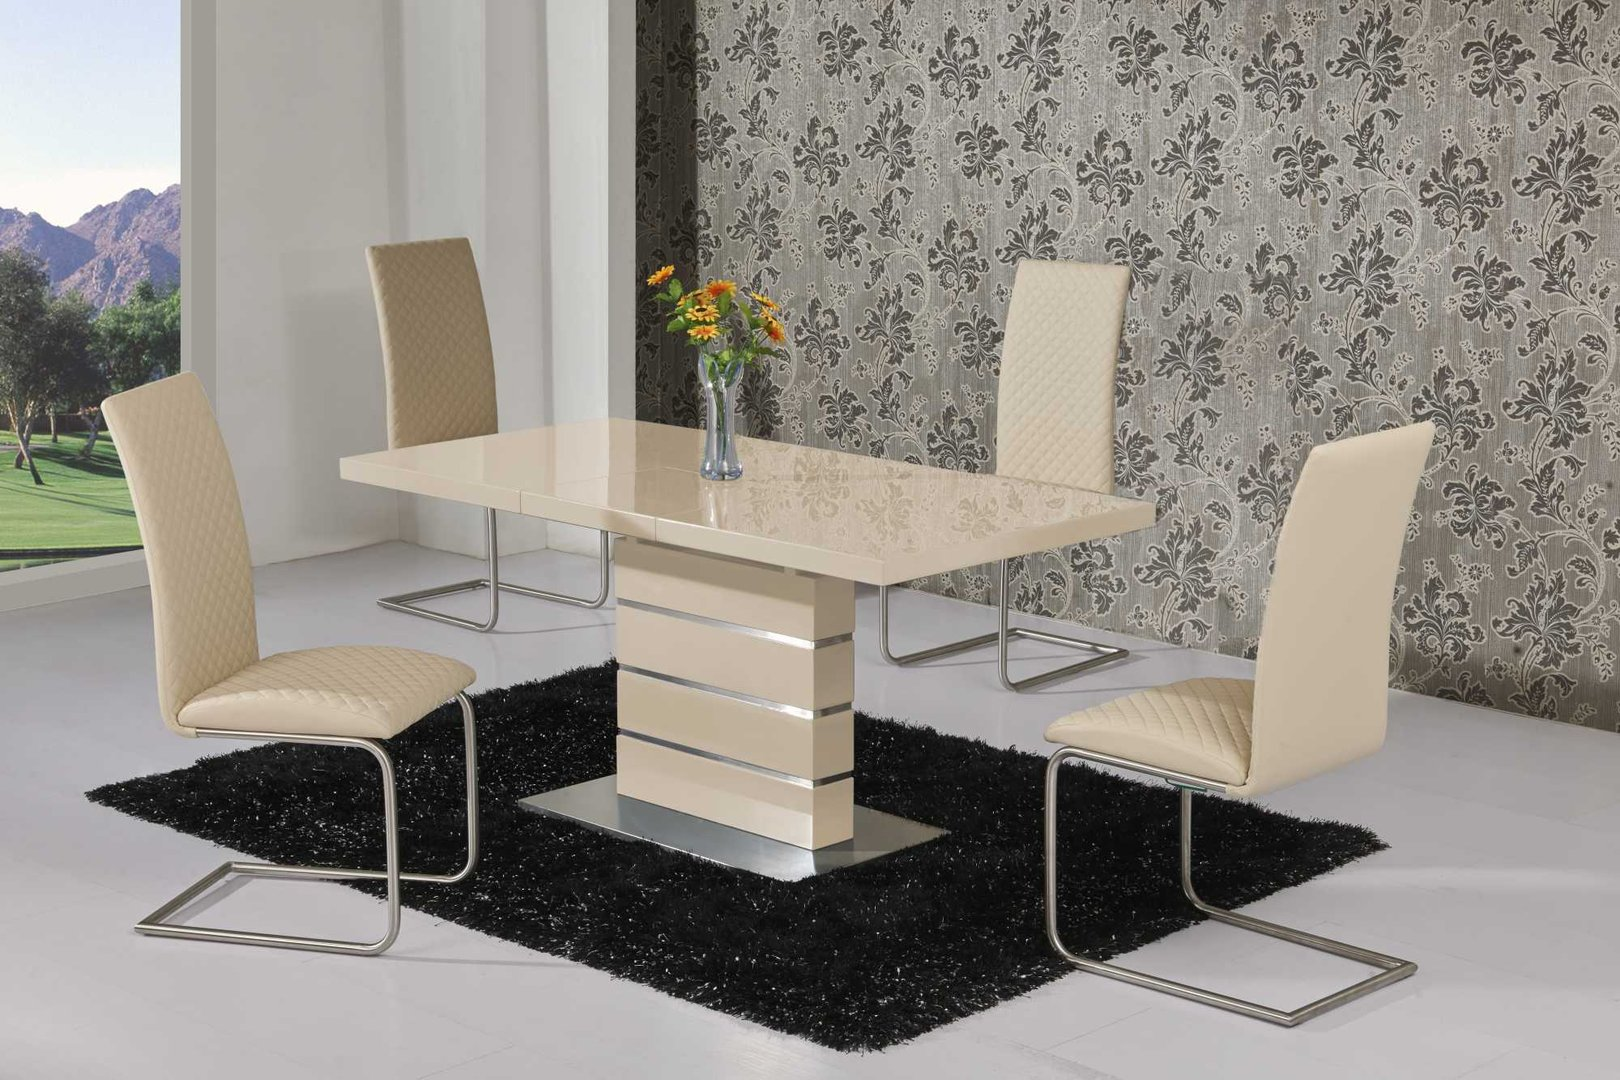 Extending Cream High Gloss Dining Table And 6 Cream Chairs